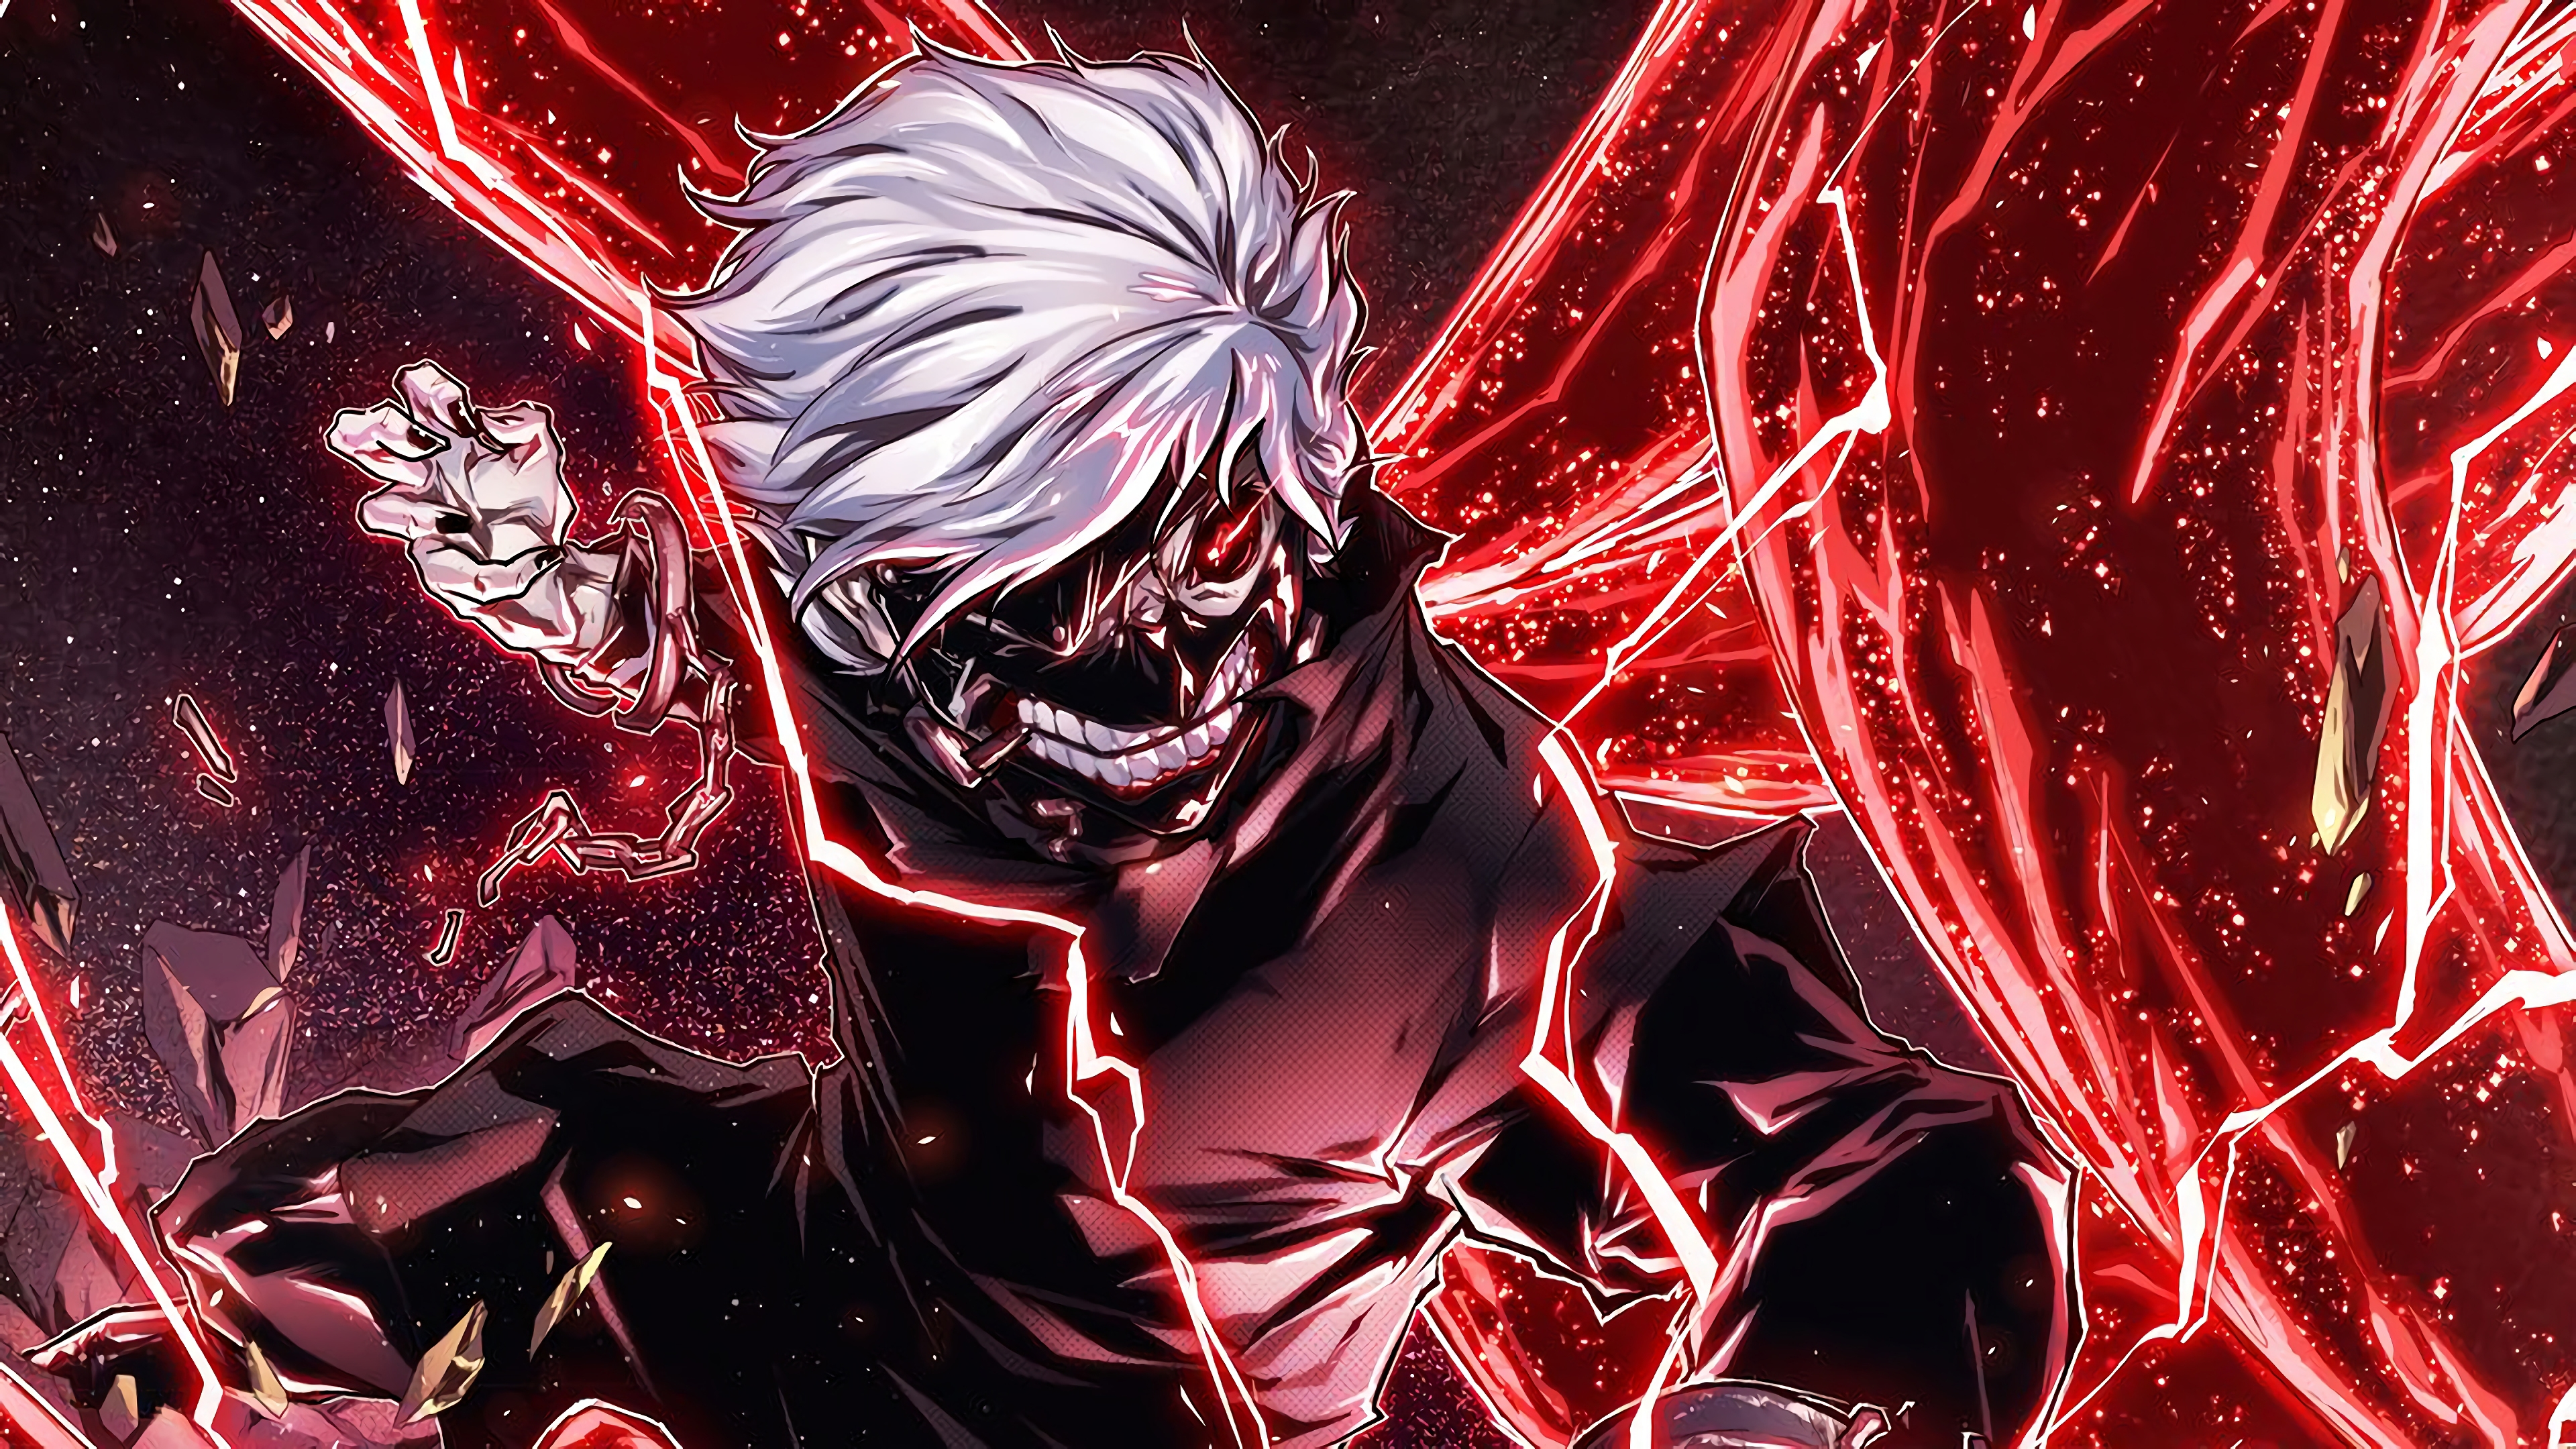 26 Tokyo Ghoul Hd Wallpapers Backgrounds